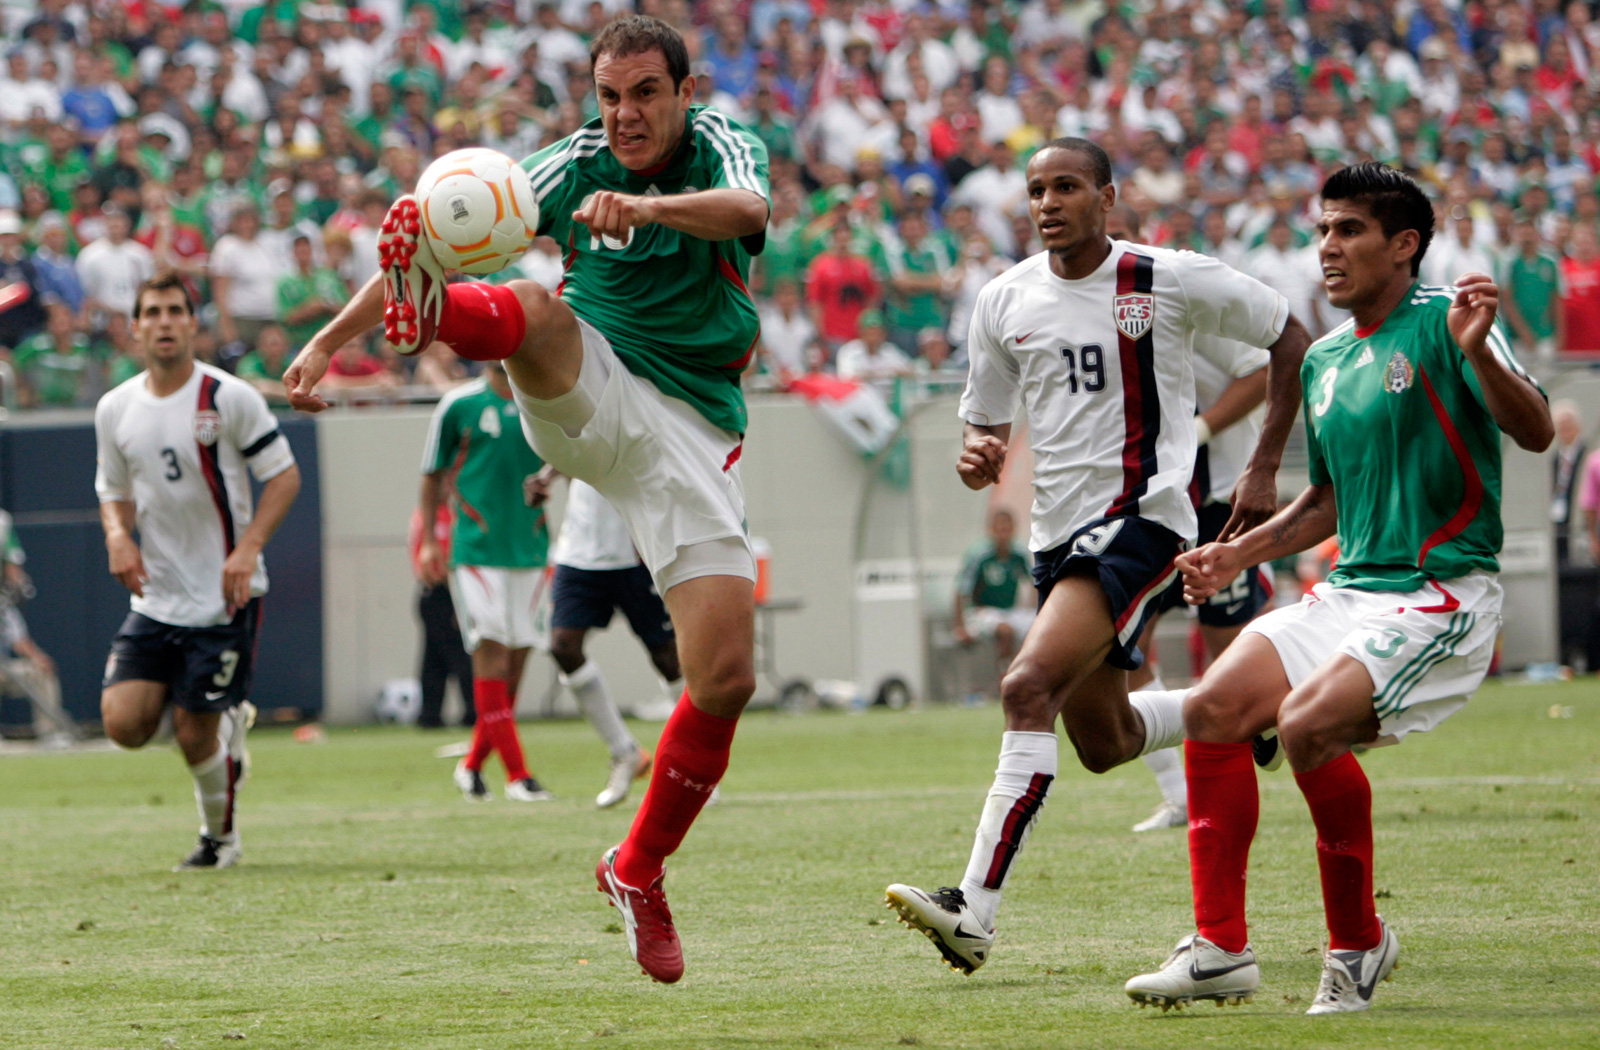 Blanco extends for the ball at the 2007 CONCACAF Gold Cup final against the USA, which the Americans won 2-1 in Chicago.